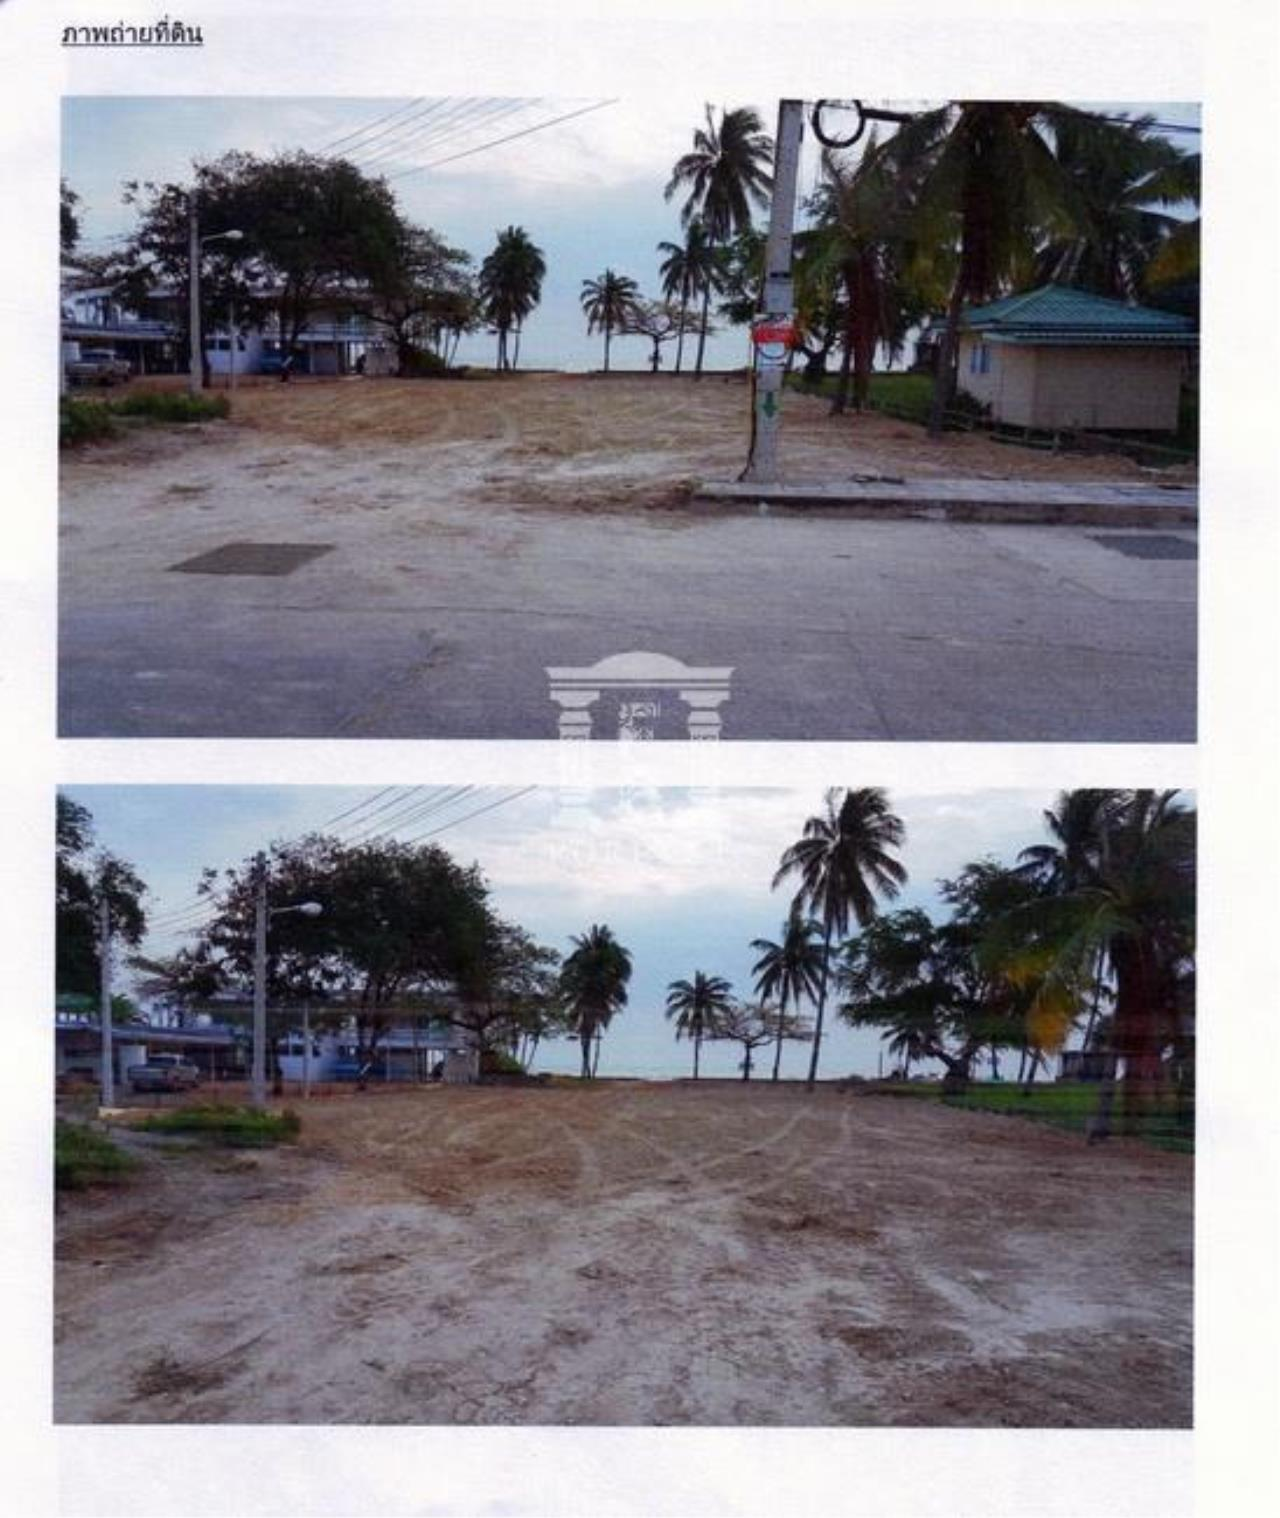 Forbest Properties Agency's 37556-Land for sale, in Hua hin district, Prajuabkeereekhun province, 1 rai 96 sq.wa. 3